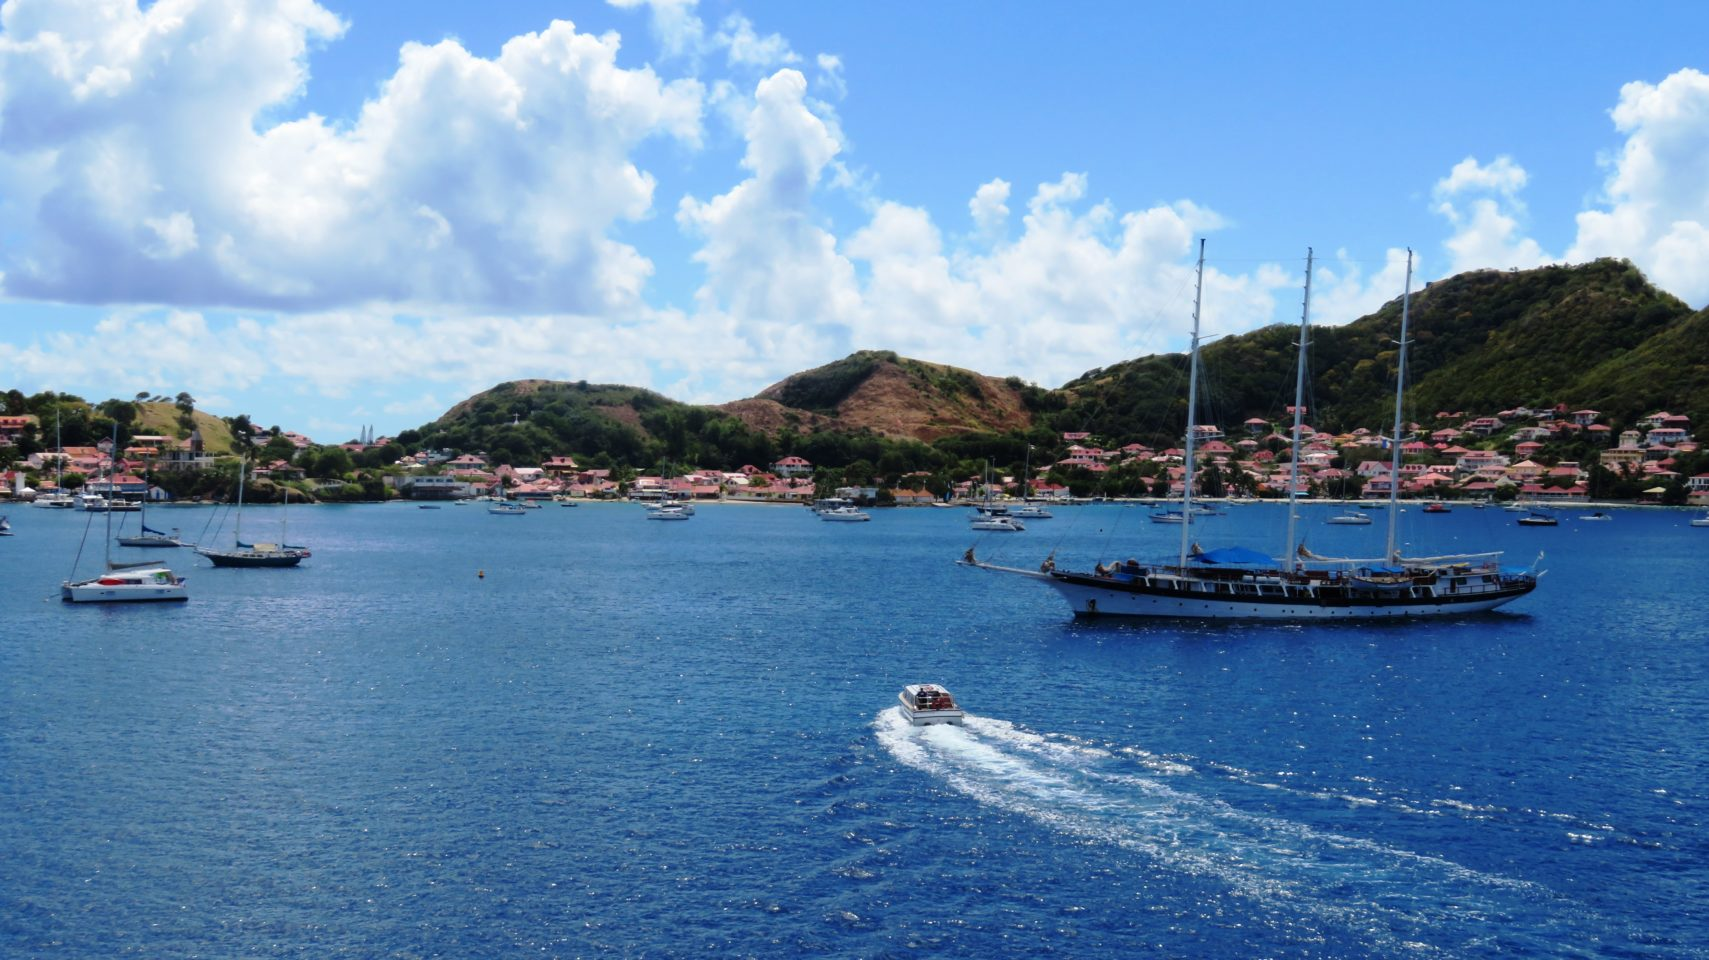 Windstar Cruises ~ a glorious view from our French balcony overlooking the renowned Baie des Saintes in Guadeloupe, French West Indies